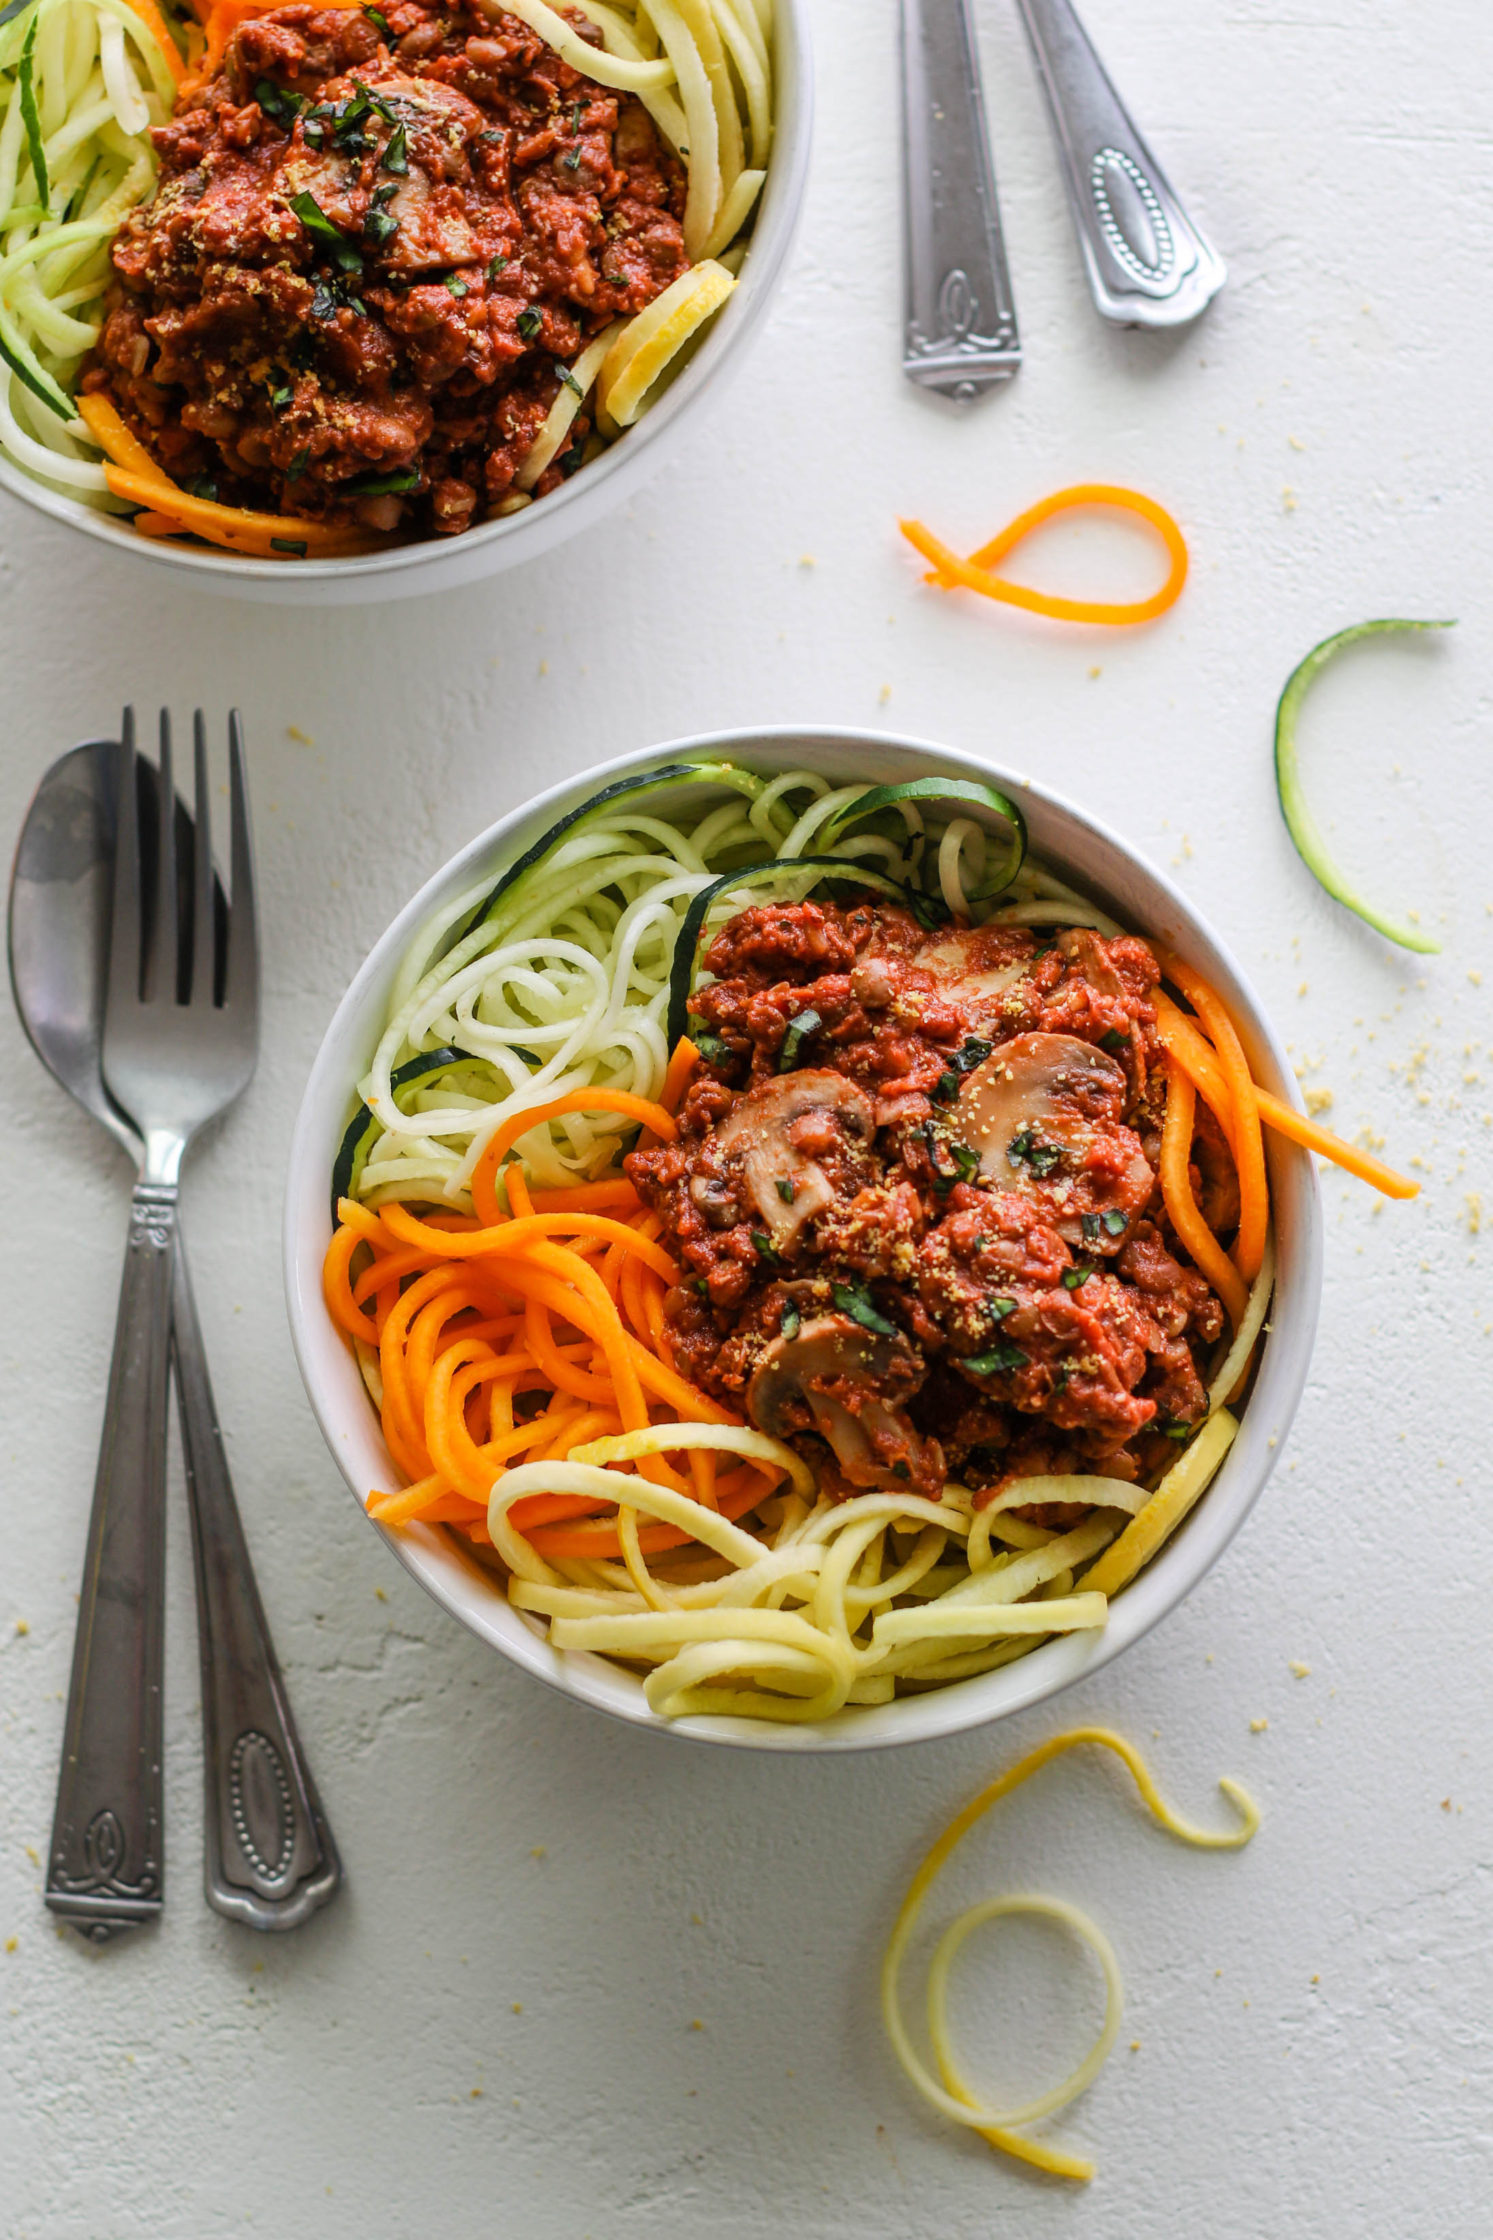 Veggie Noodles with Lentil Walnut Mushroom Bolognese by Flora & Vino